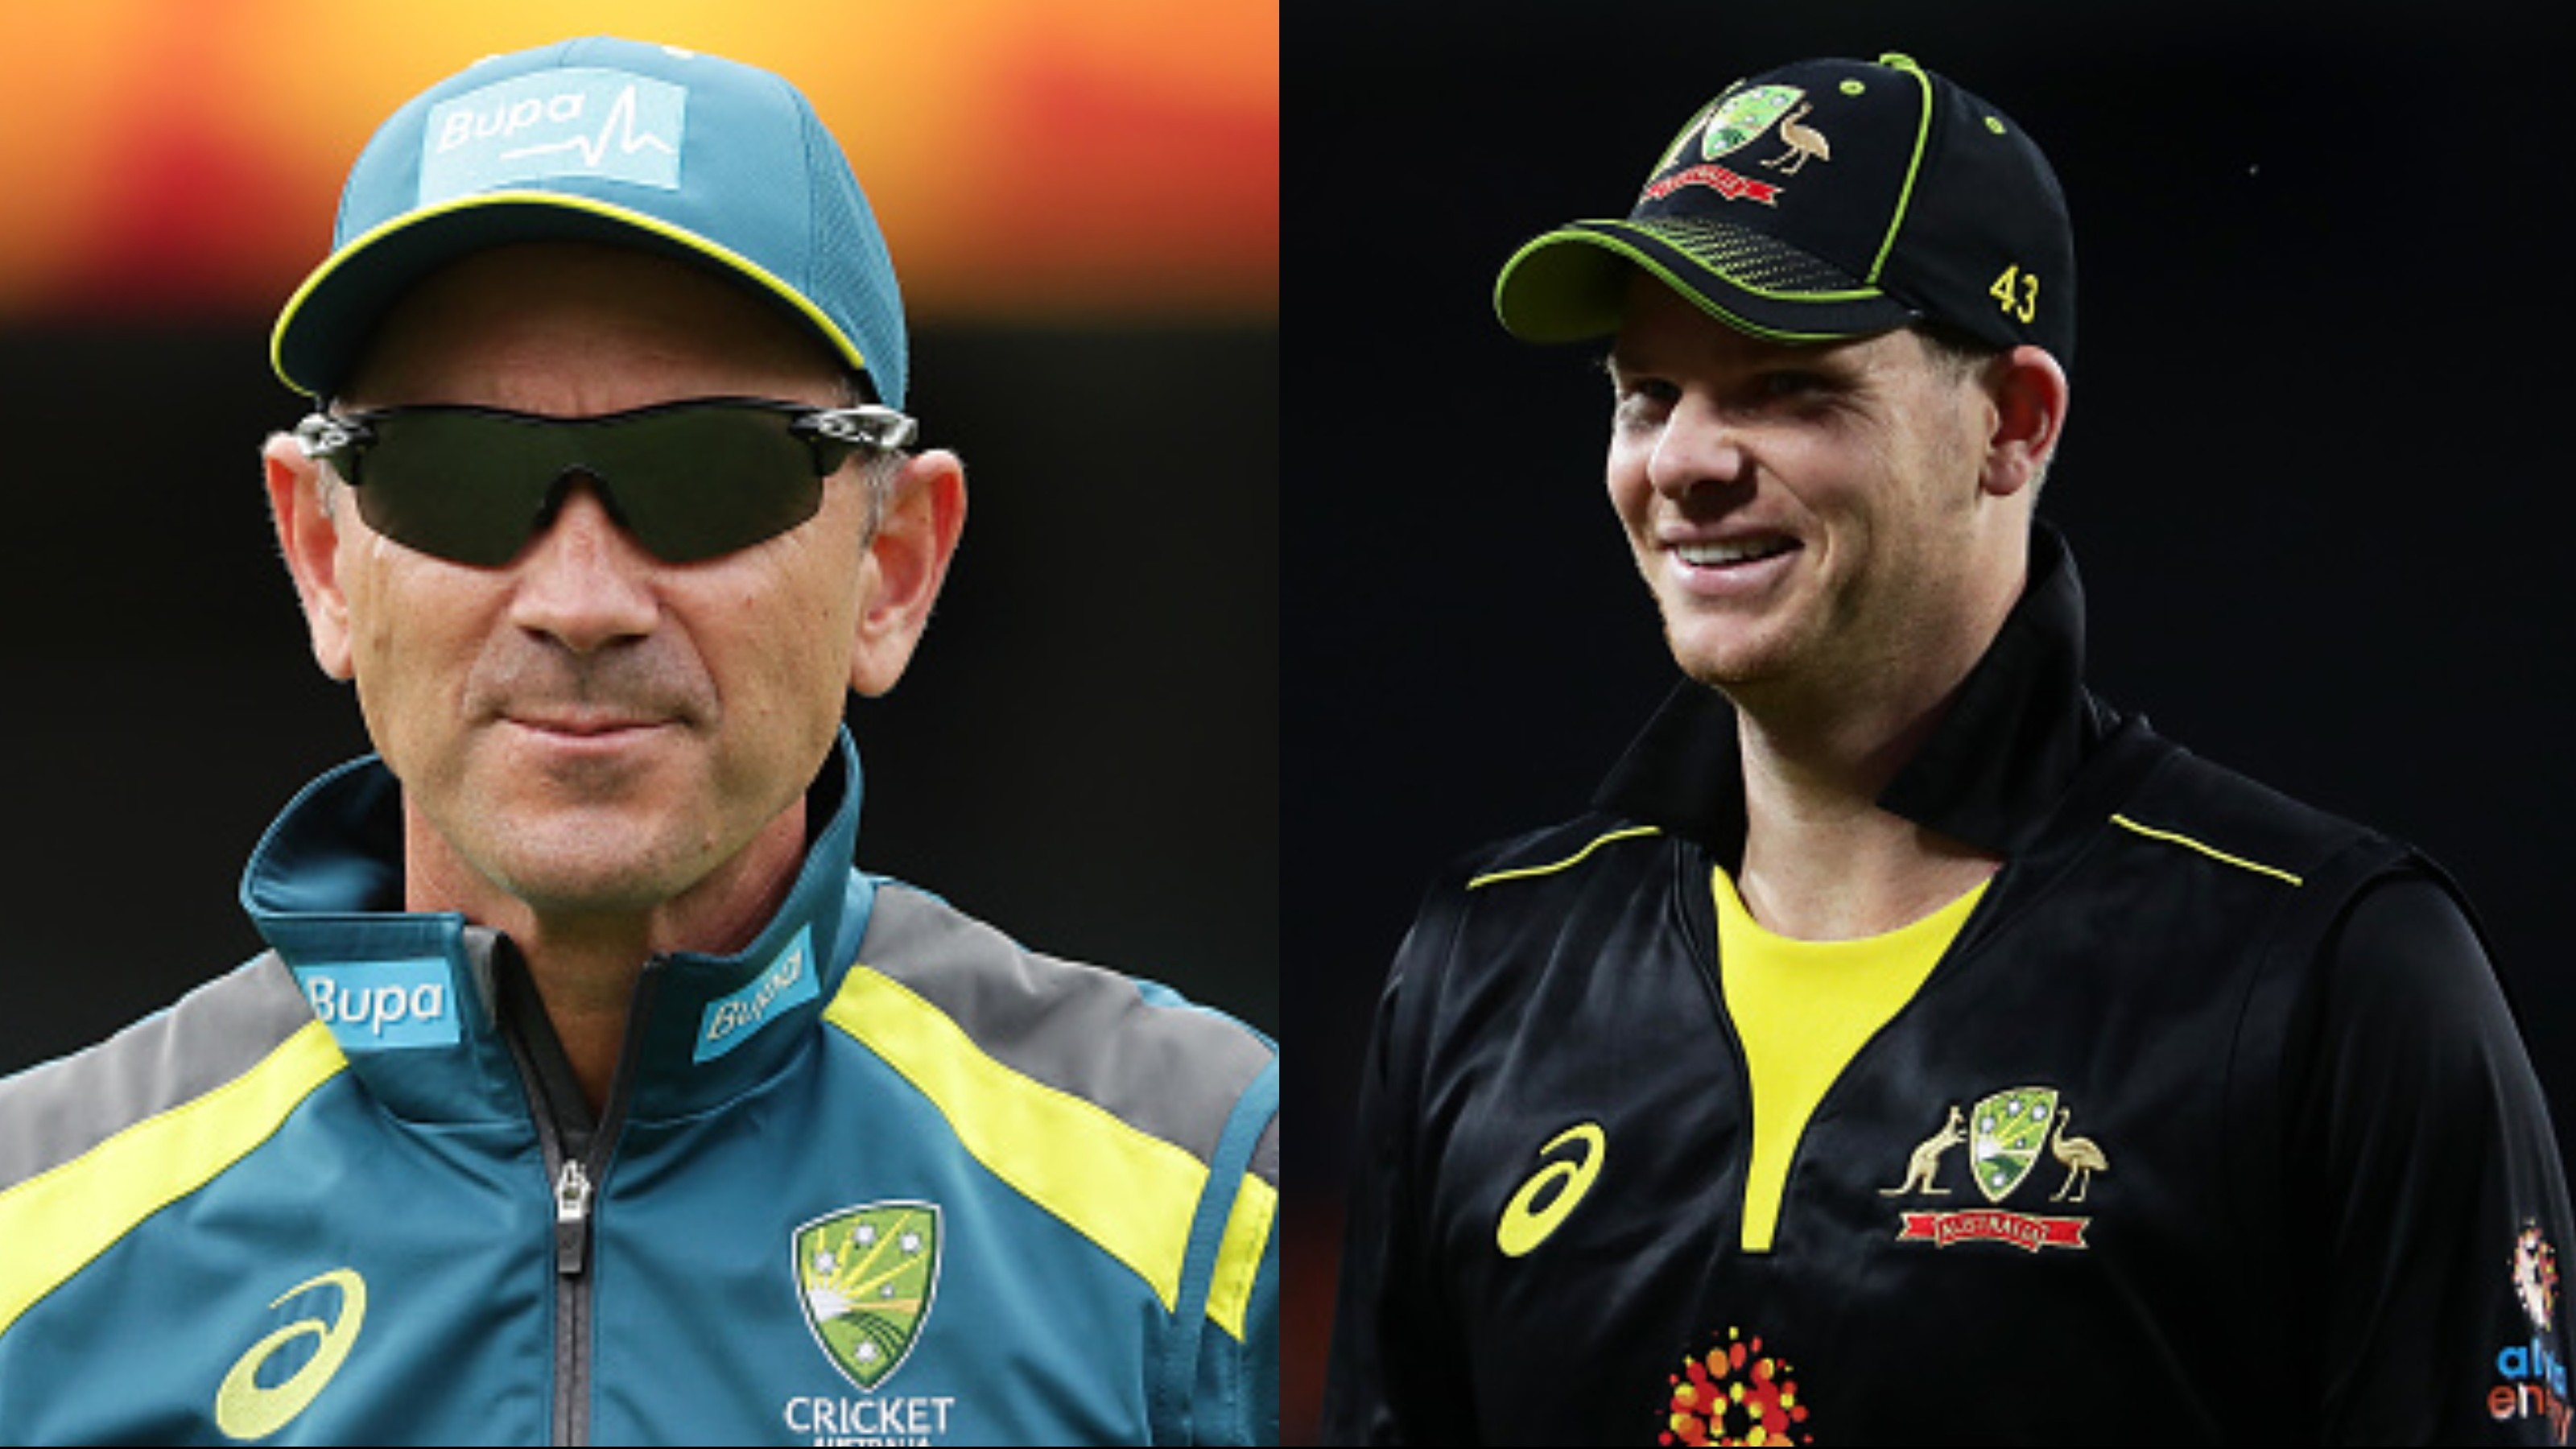 AUS v PAK 2019: Justin Langer hopes Steve Smith becomes no.1 in all three formats shortly